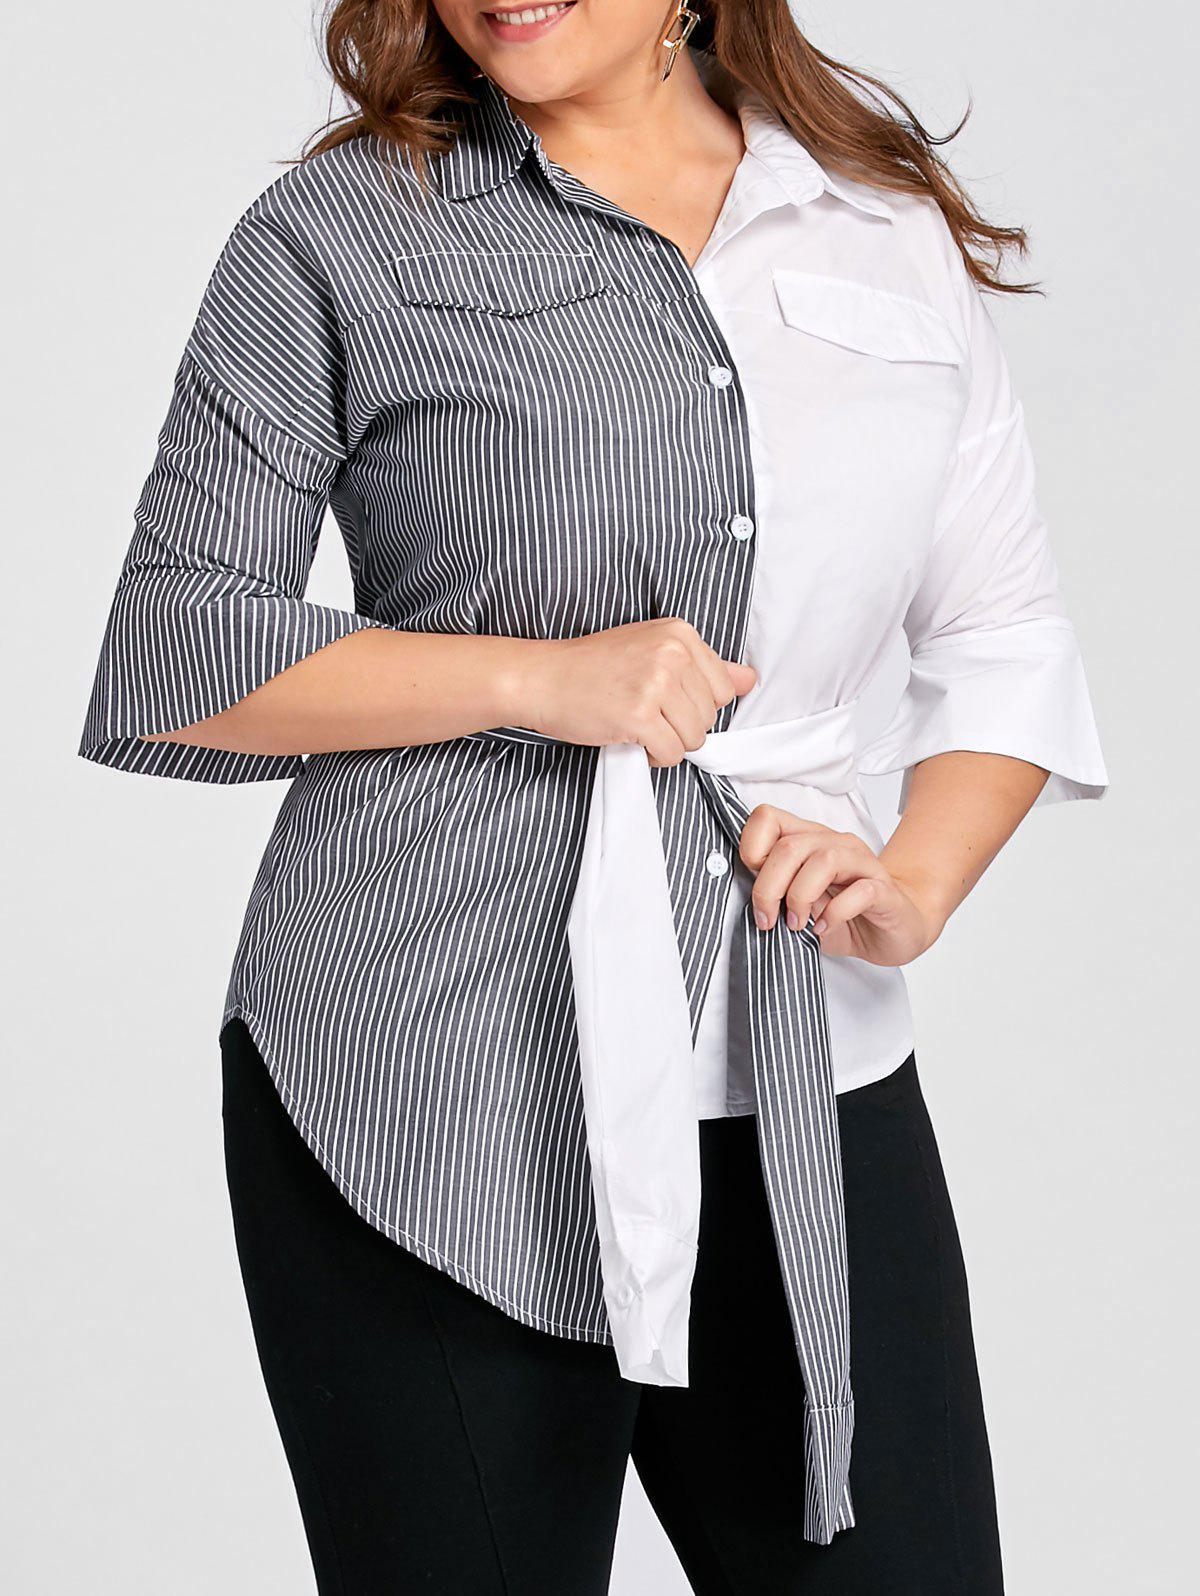 Plus Size Contrast Striped Shirt with BeltWOMEN<br><br>Size: 5XL; Color: GREY AND WHITE; Material: Cotton Blends,Polyester; Shirt Length: Regular; Sleeve Length: Full; Collar: Shirt Collar; Style: Fashion; Season: Fall,Spring; Embellishment: Button; Pattern Type: Striped; Weight: 0.3000kg; Package Contents: 1 x Shirt 1 x Belt;